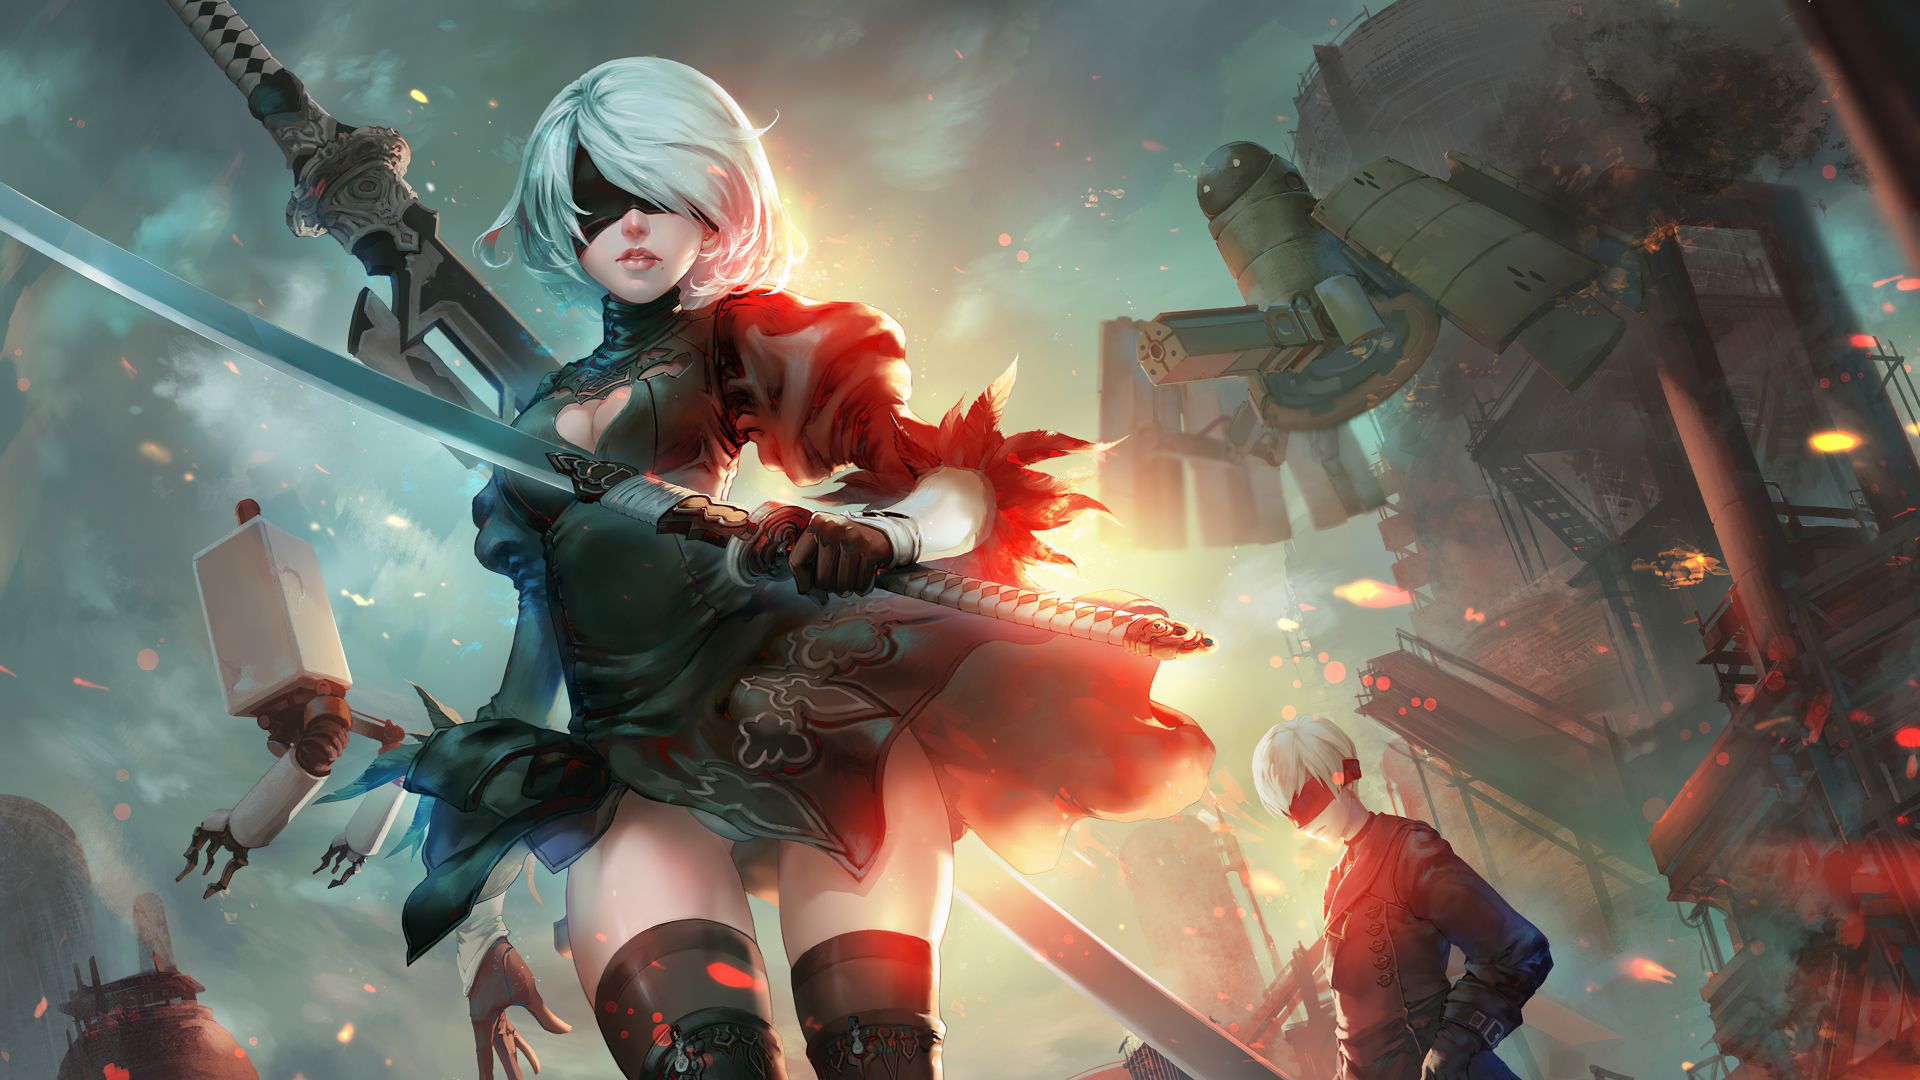 1920x1080 New Nier Automata Art 1080p Laptop Full Hd Wallpaper Hd Games 4k Wallpapers Images Photos And Background